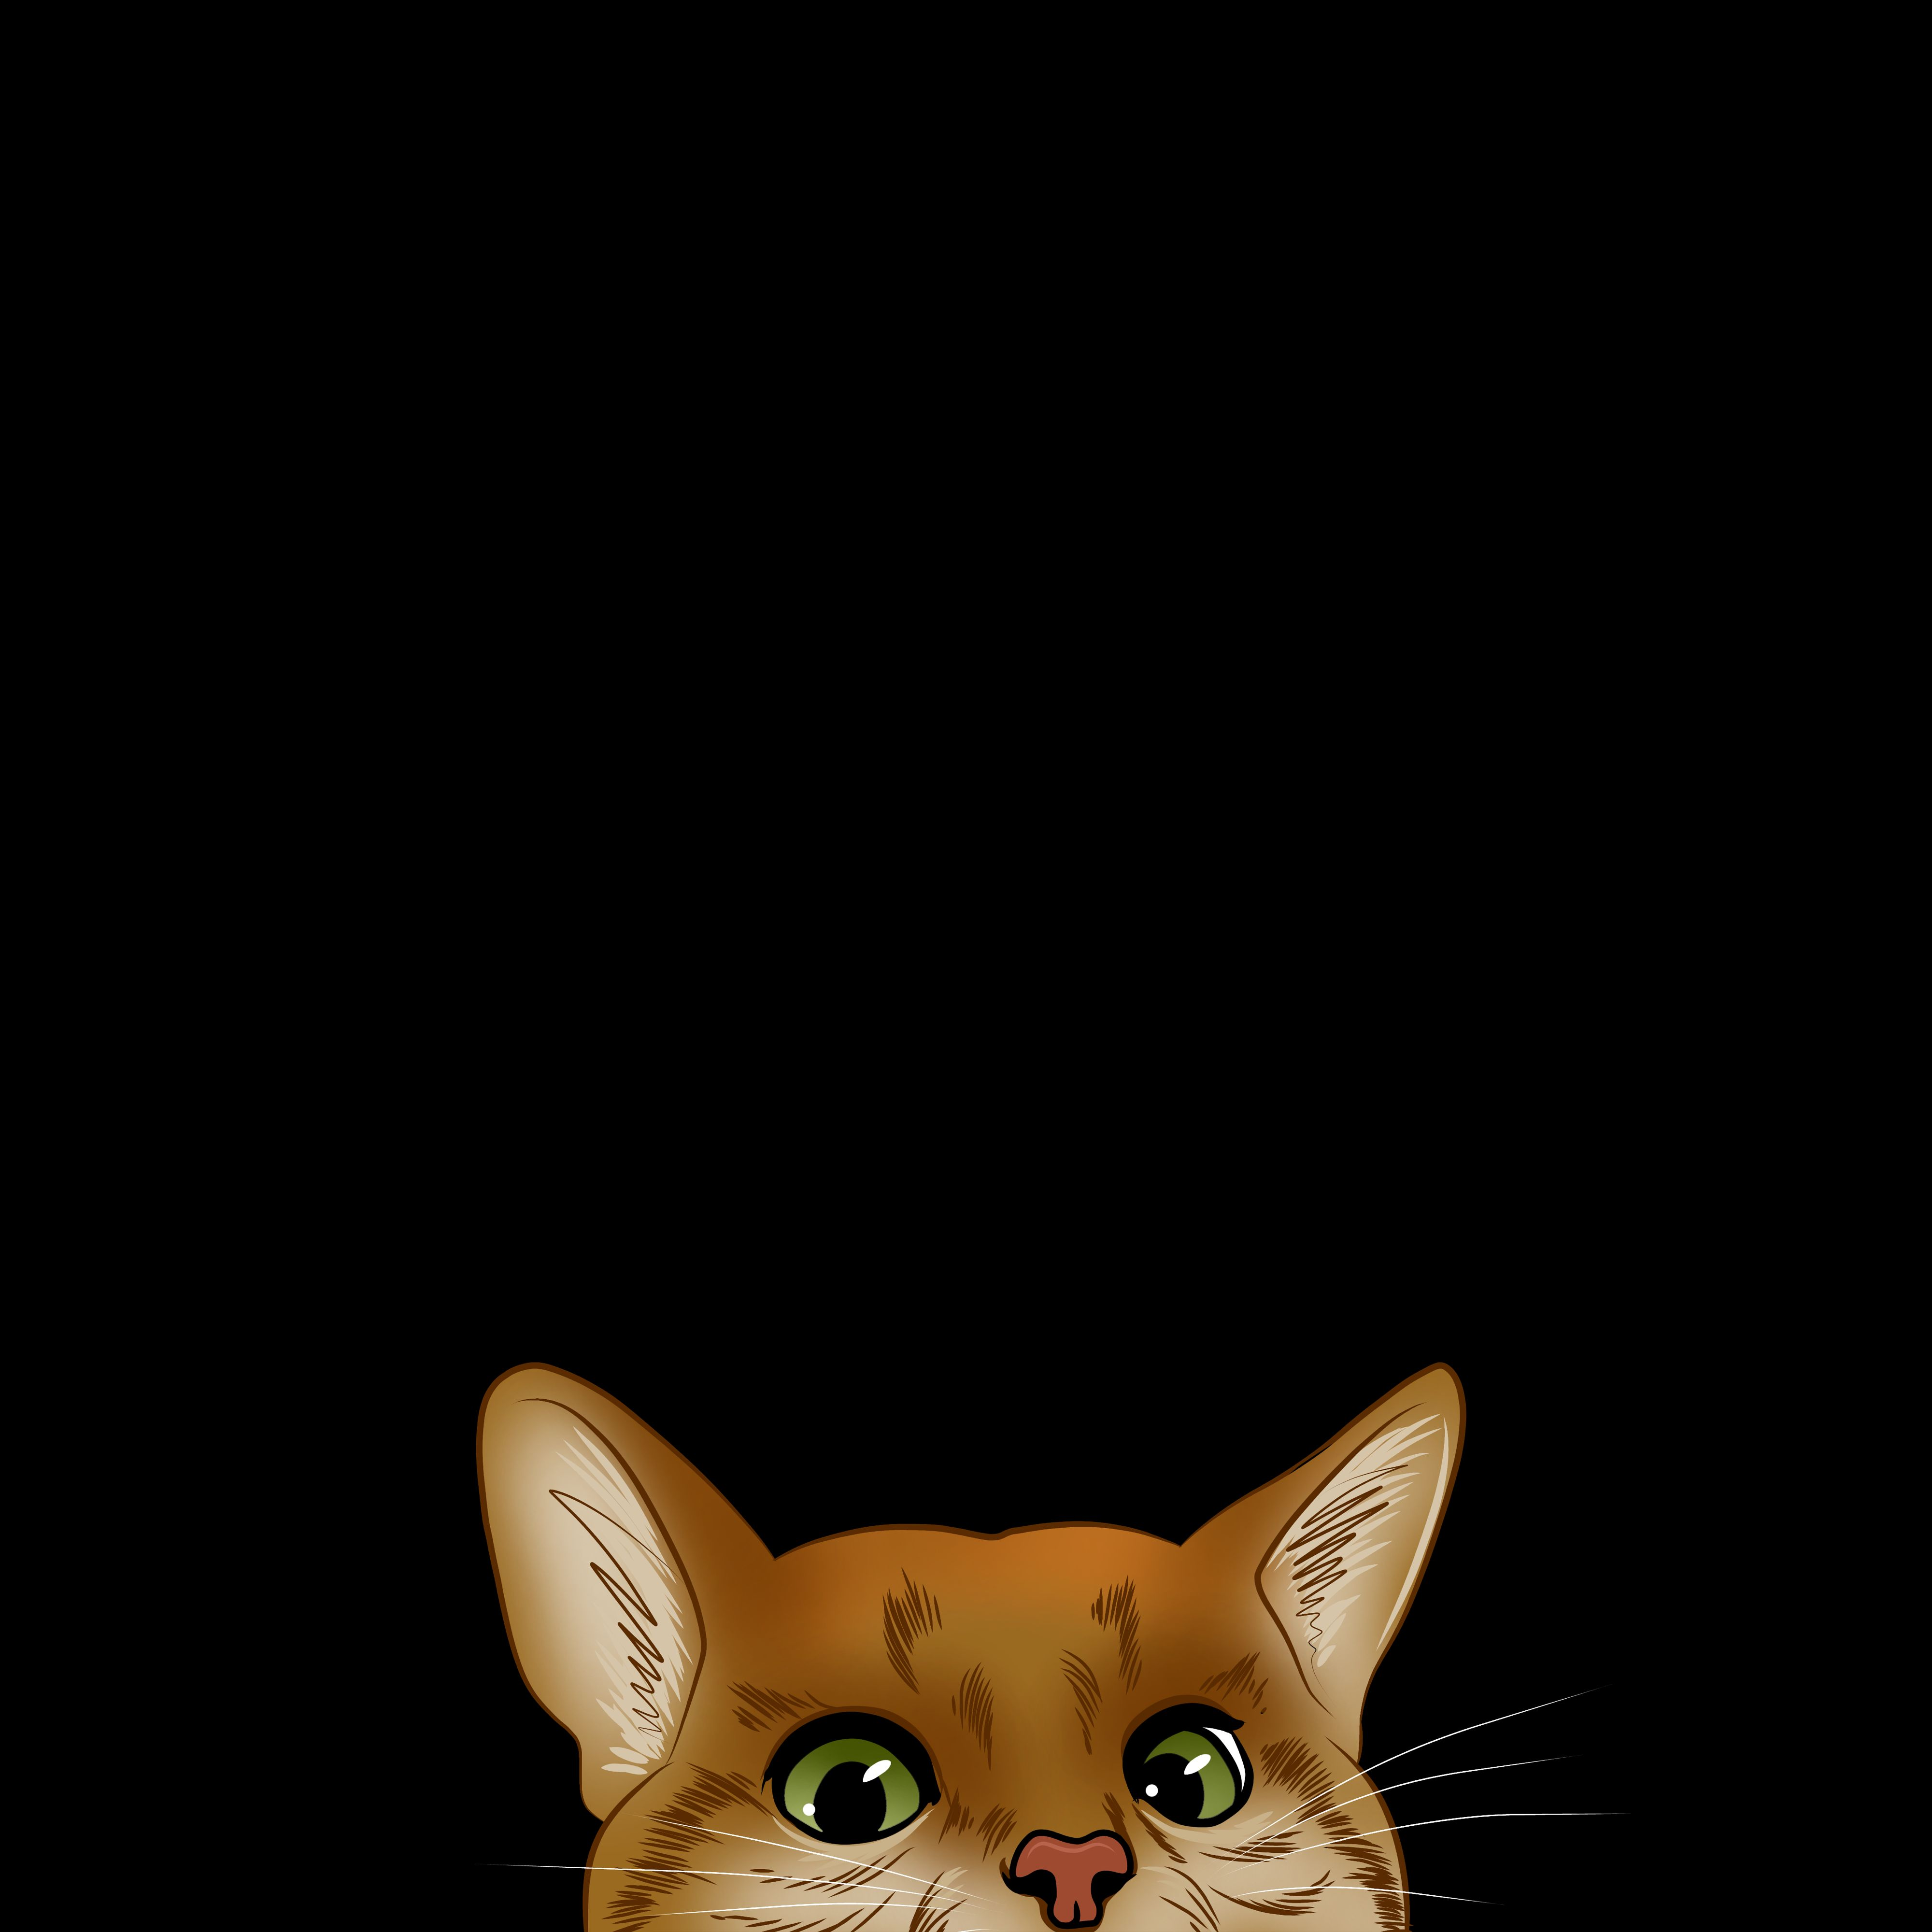 105288 download wallpaper Cat, Muzzle, Peek Out, Look Out, Hide, Art screensavers and pictures for free